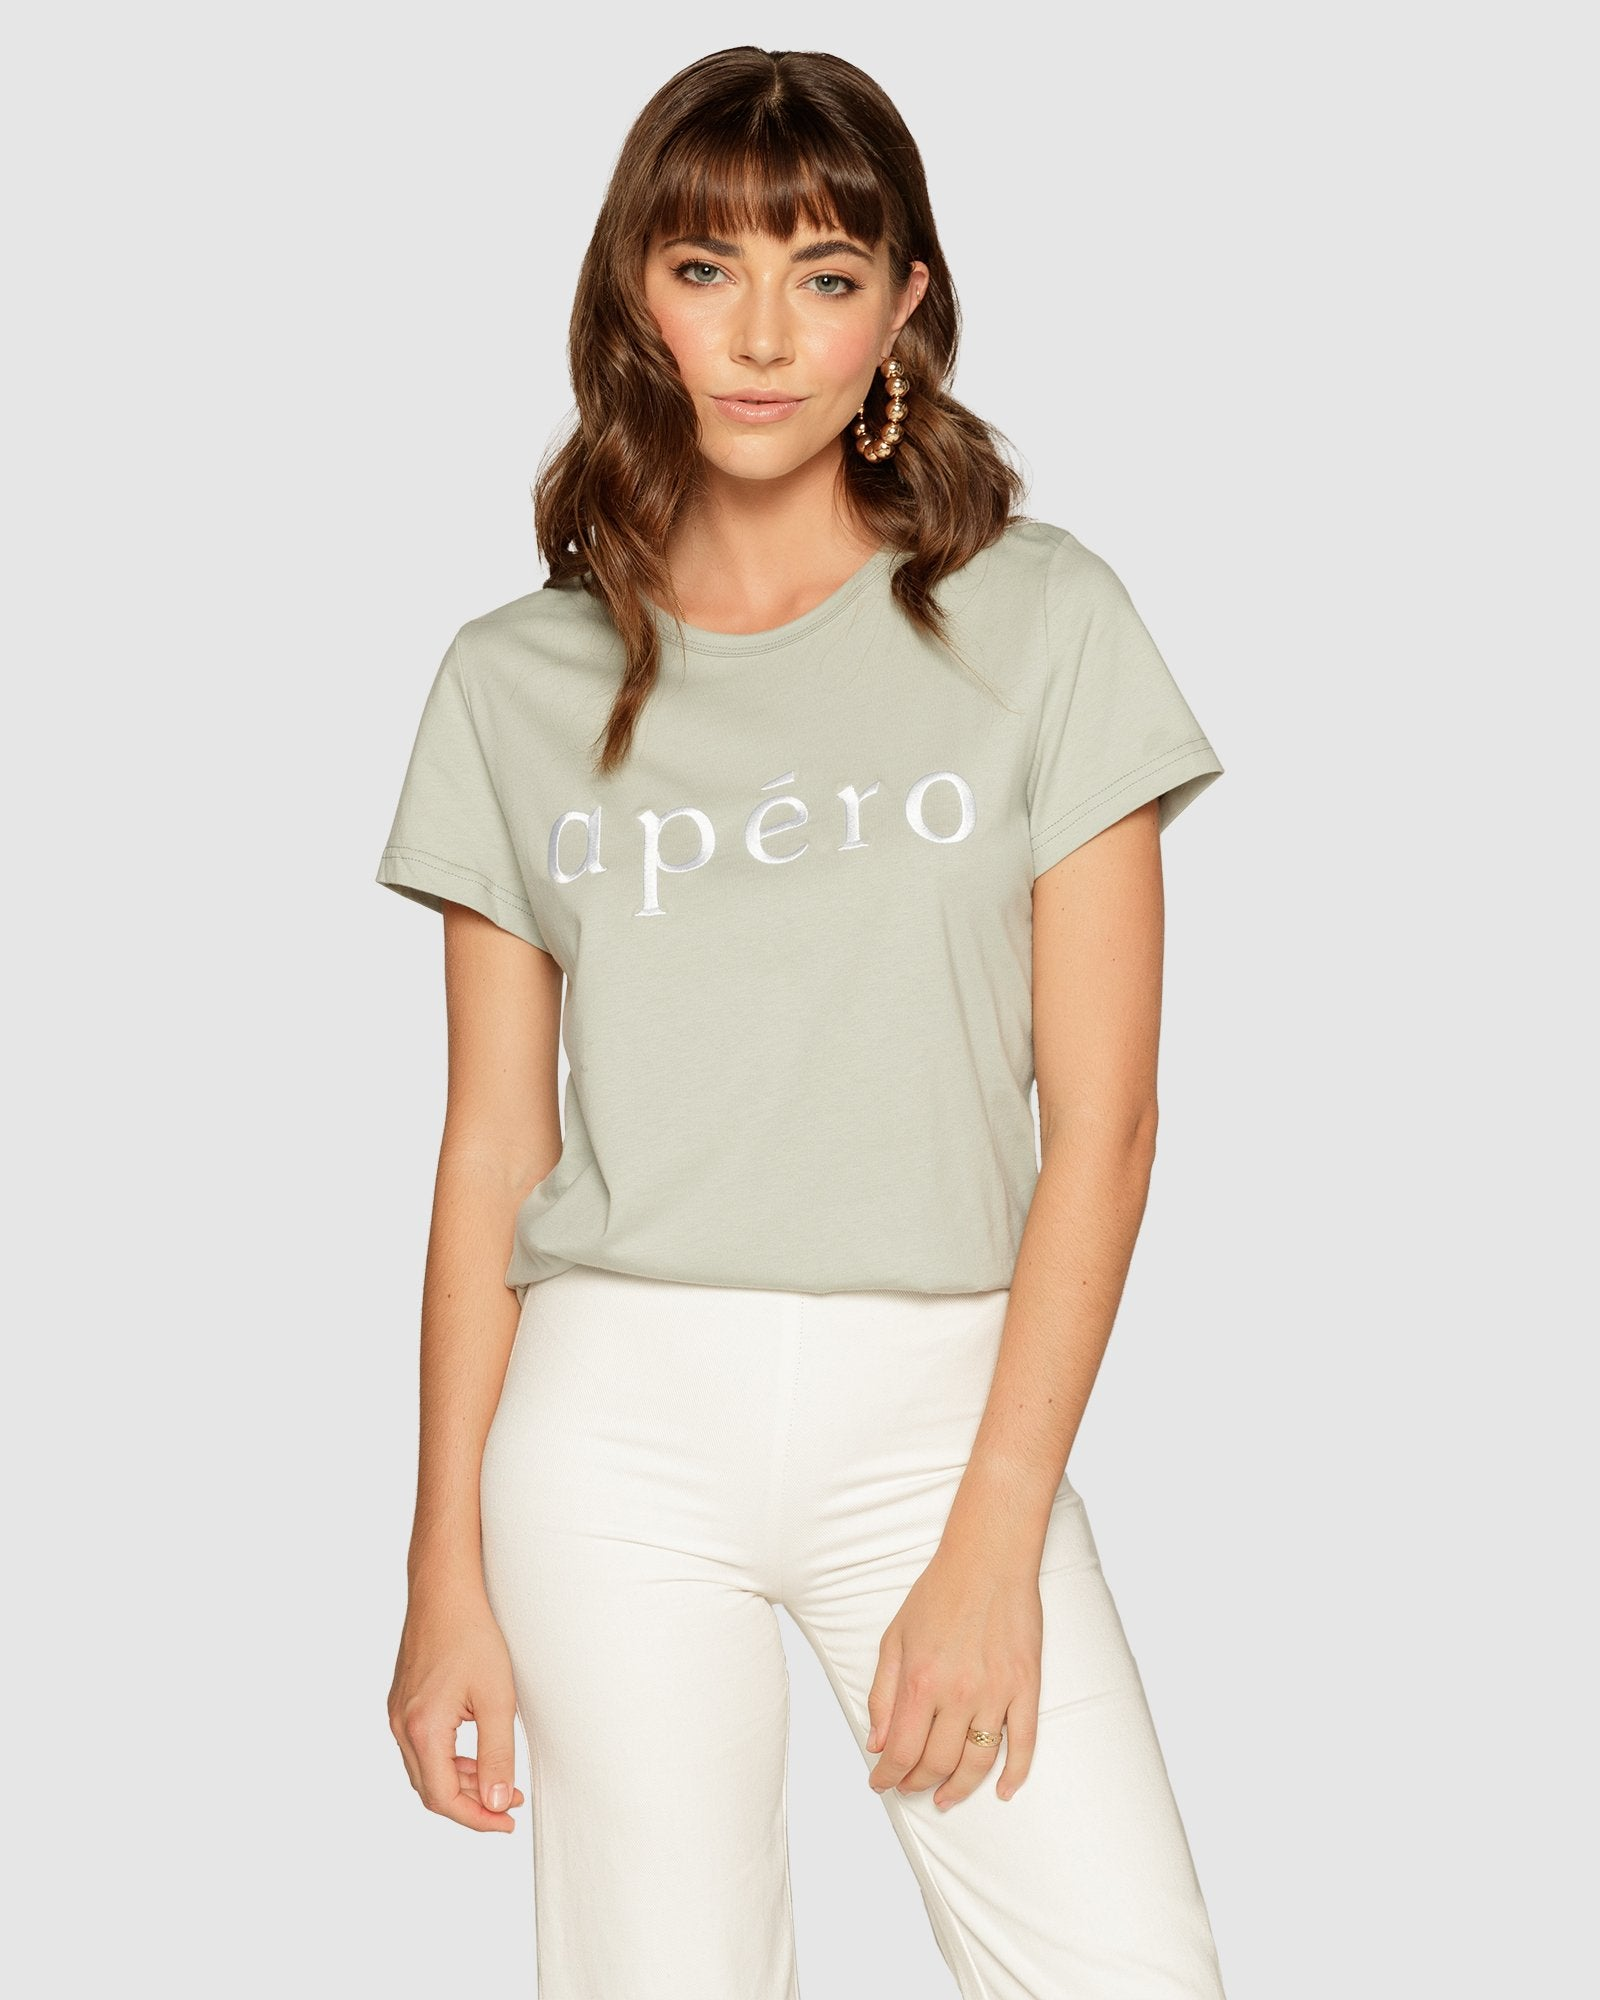 Apero Embroidered Femme Tee